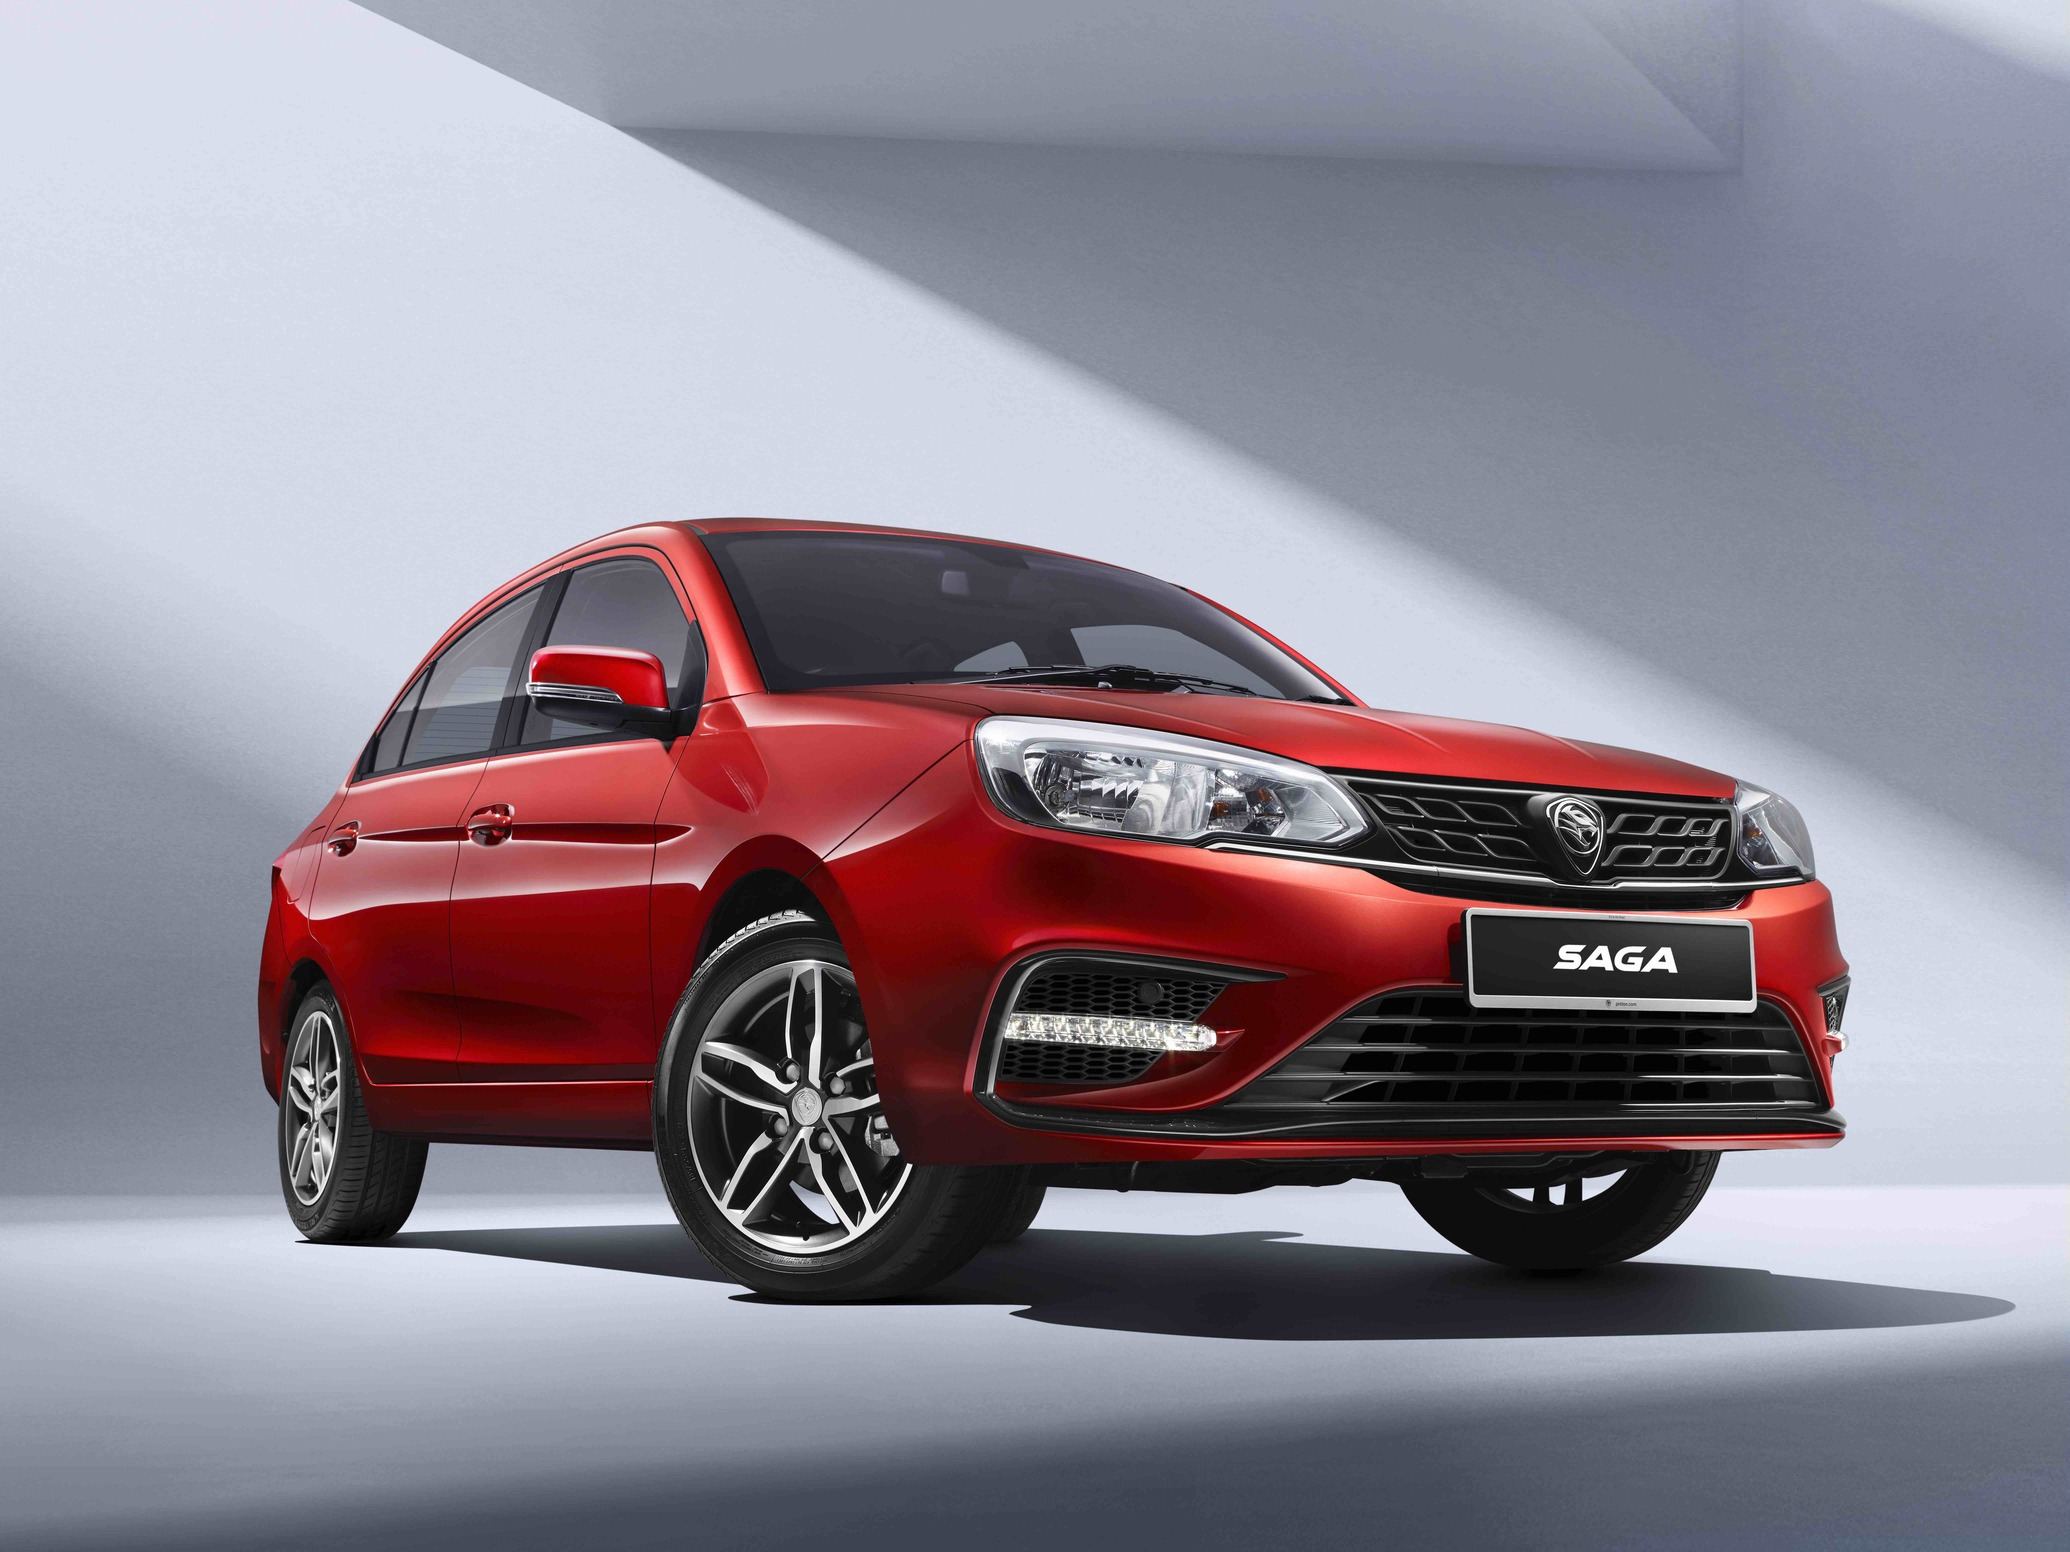 Proton Kenya: Superb Stability For Uncompromised Safety